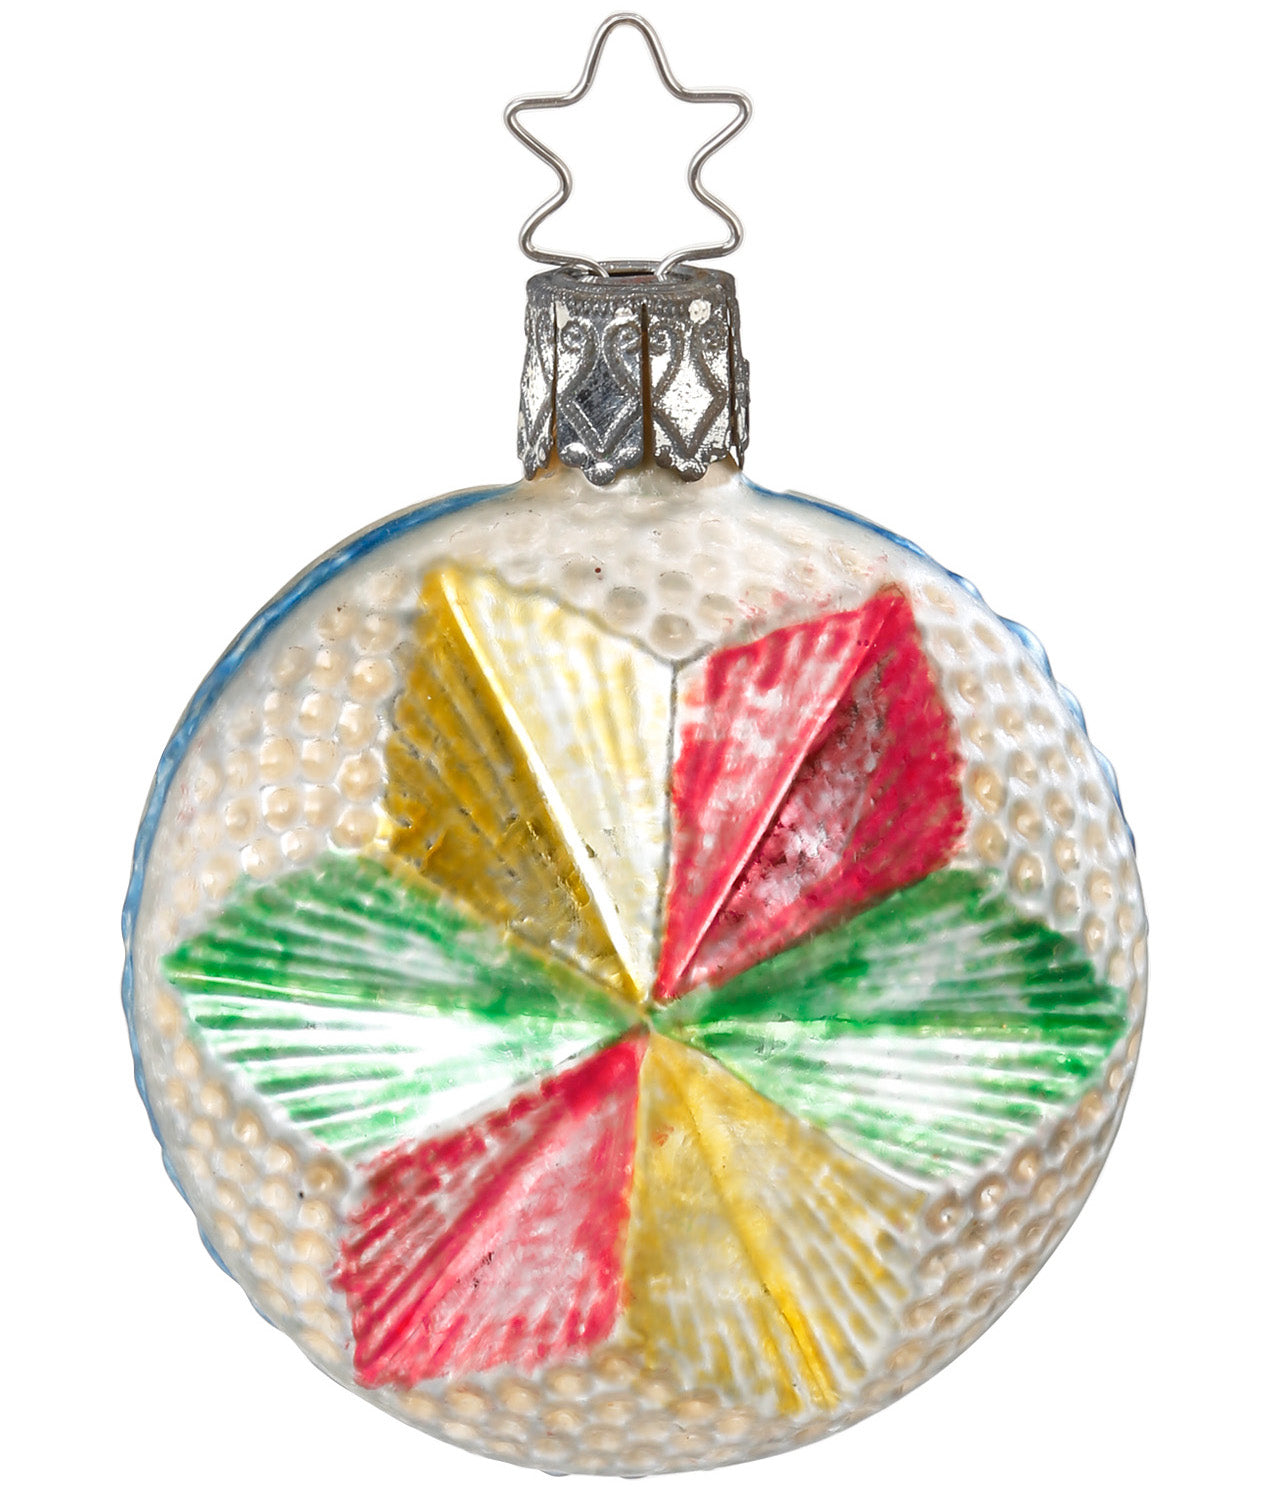 Vintage Reproduction Glass Star Ornament